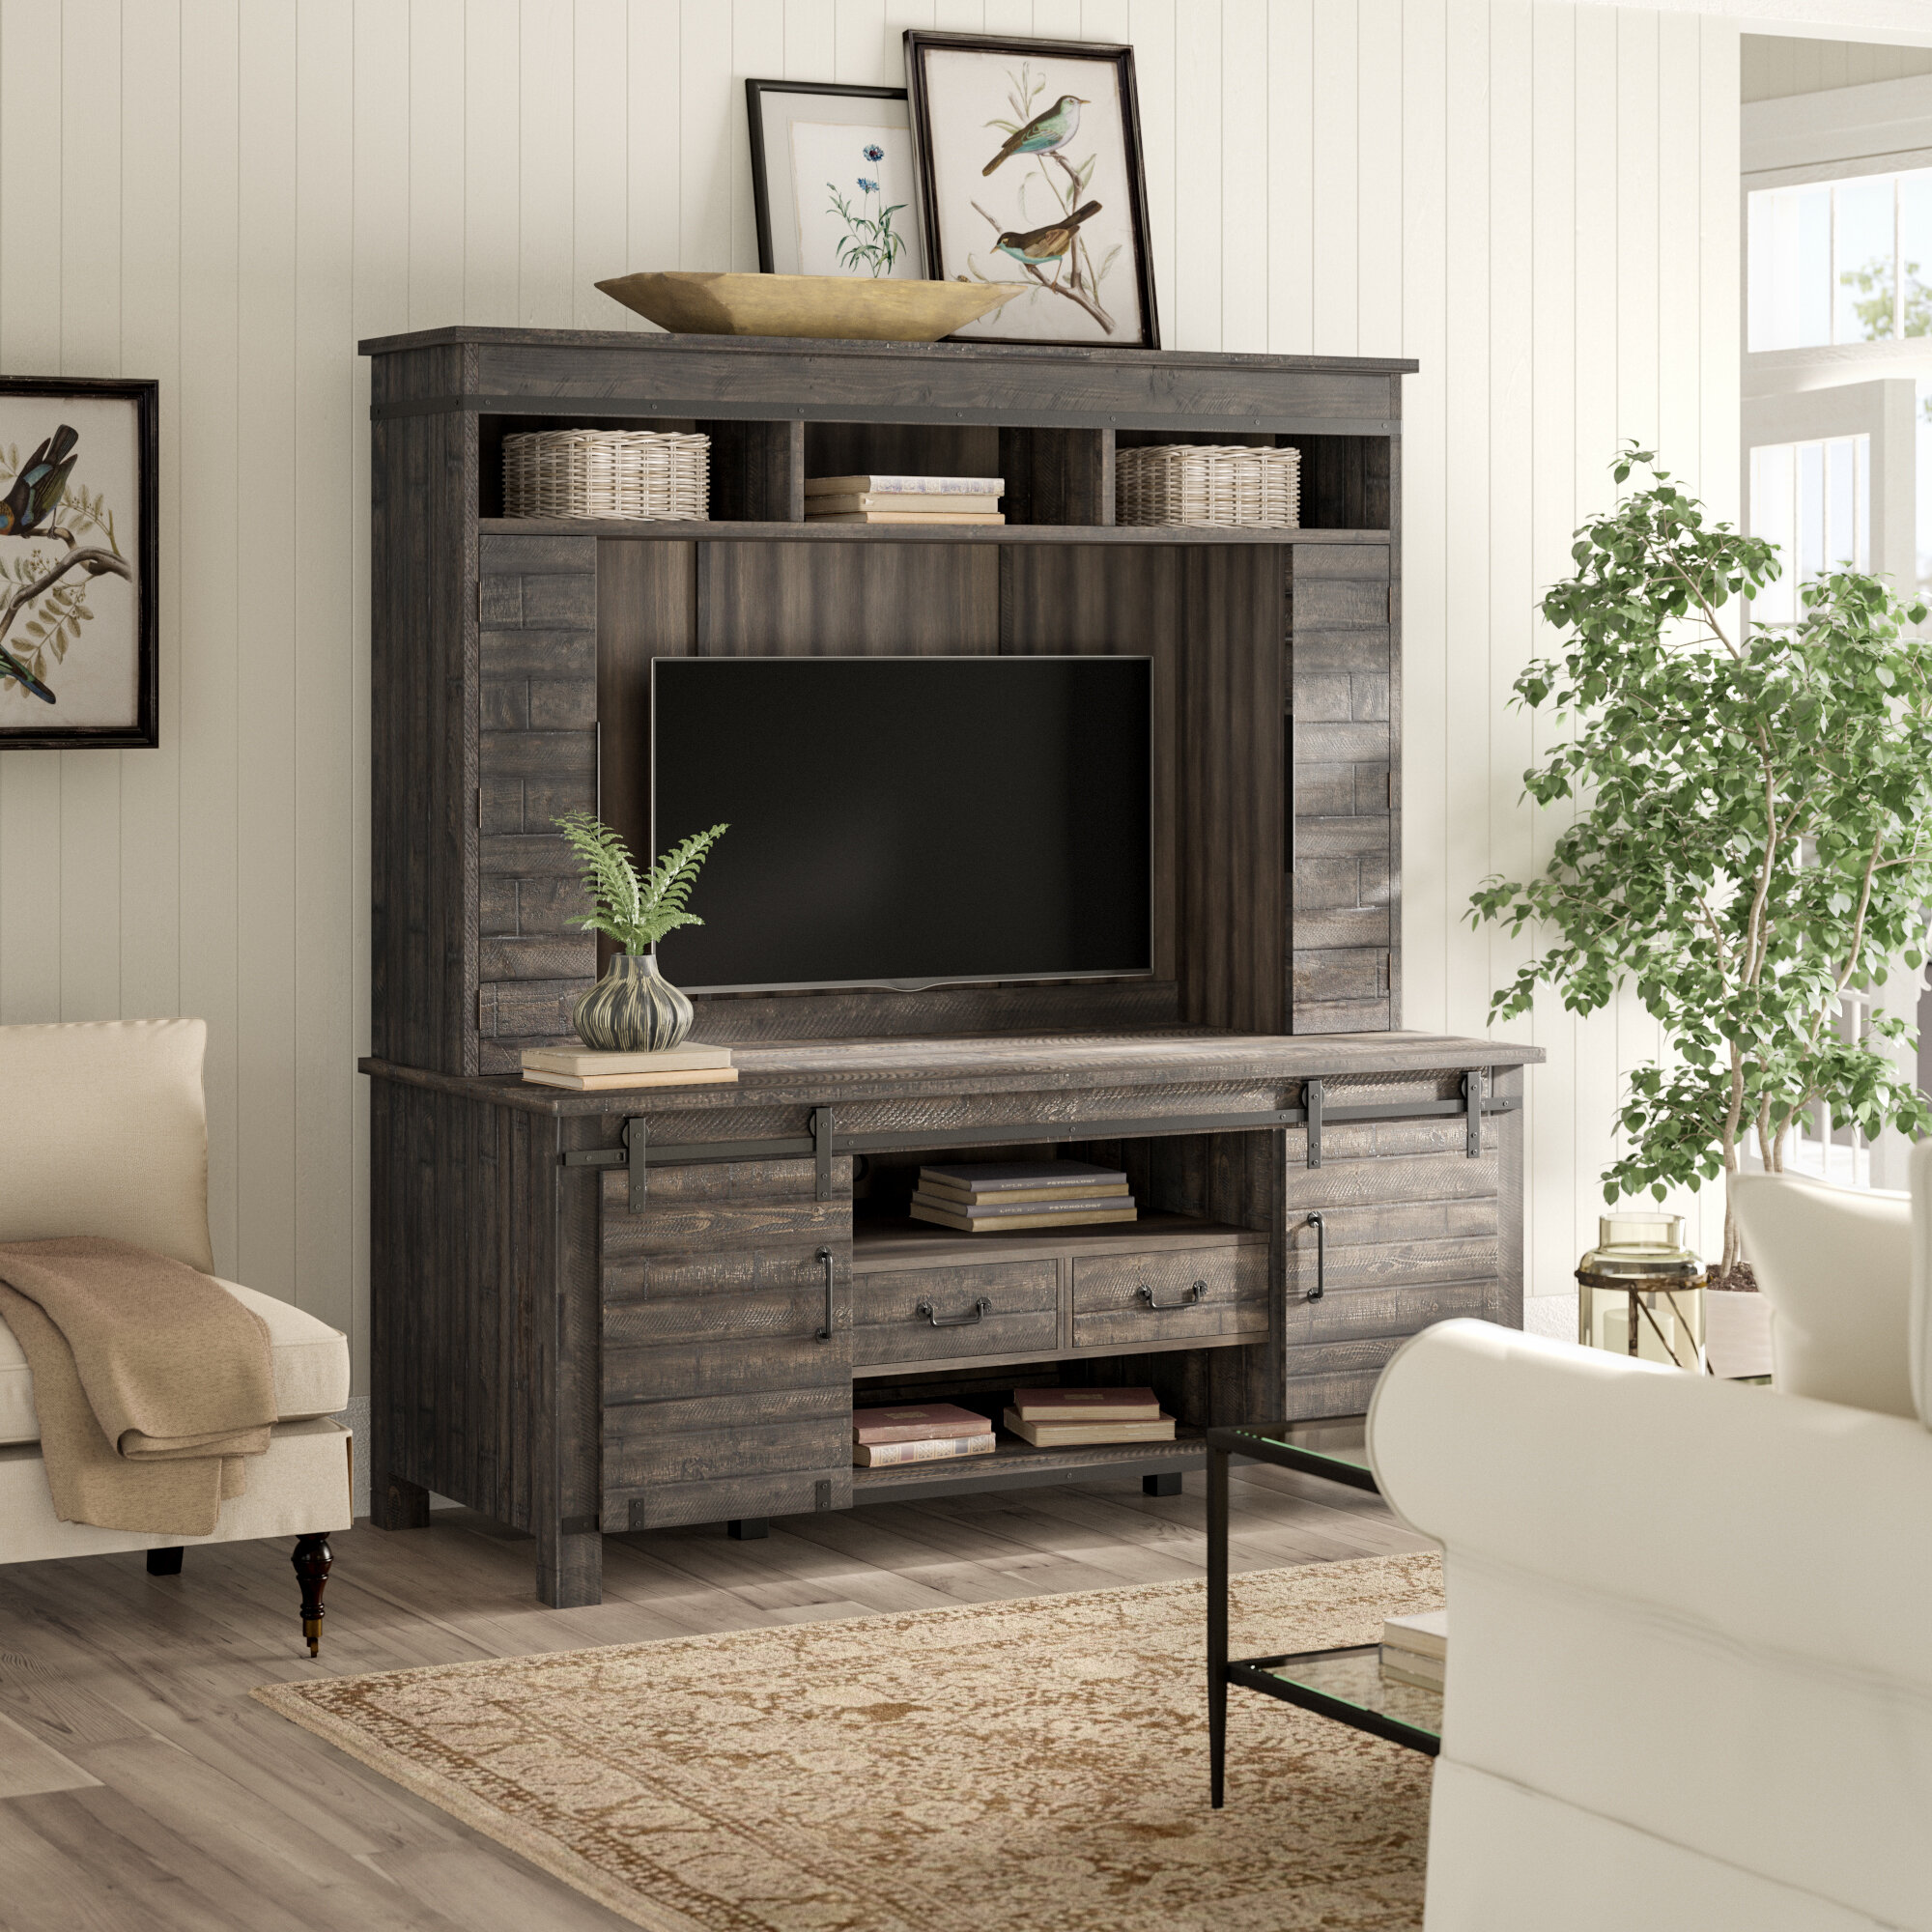 Birch lane heritage meto console entertainment center for tvs up to 60 birch lane